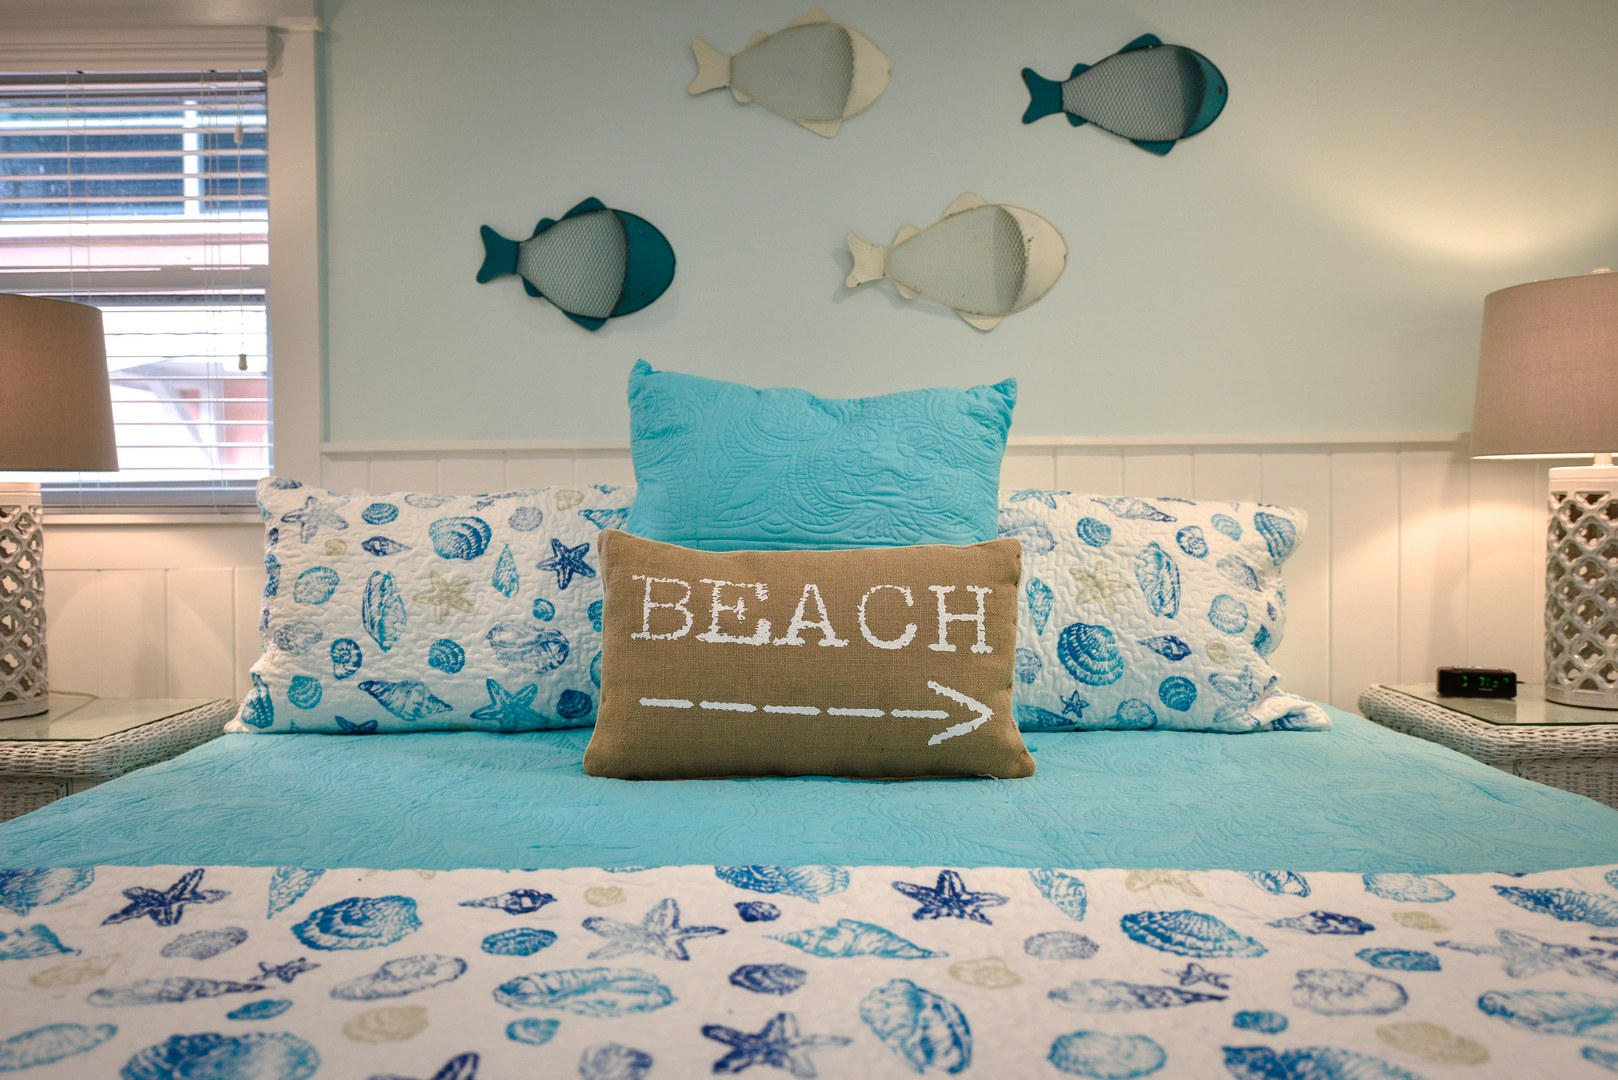 Comfortable King Bed and Pillows with Great Decorations